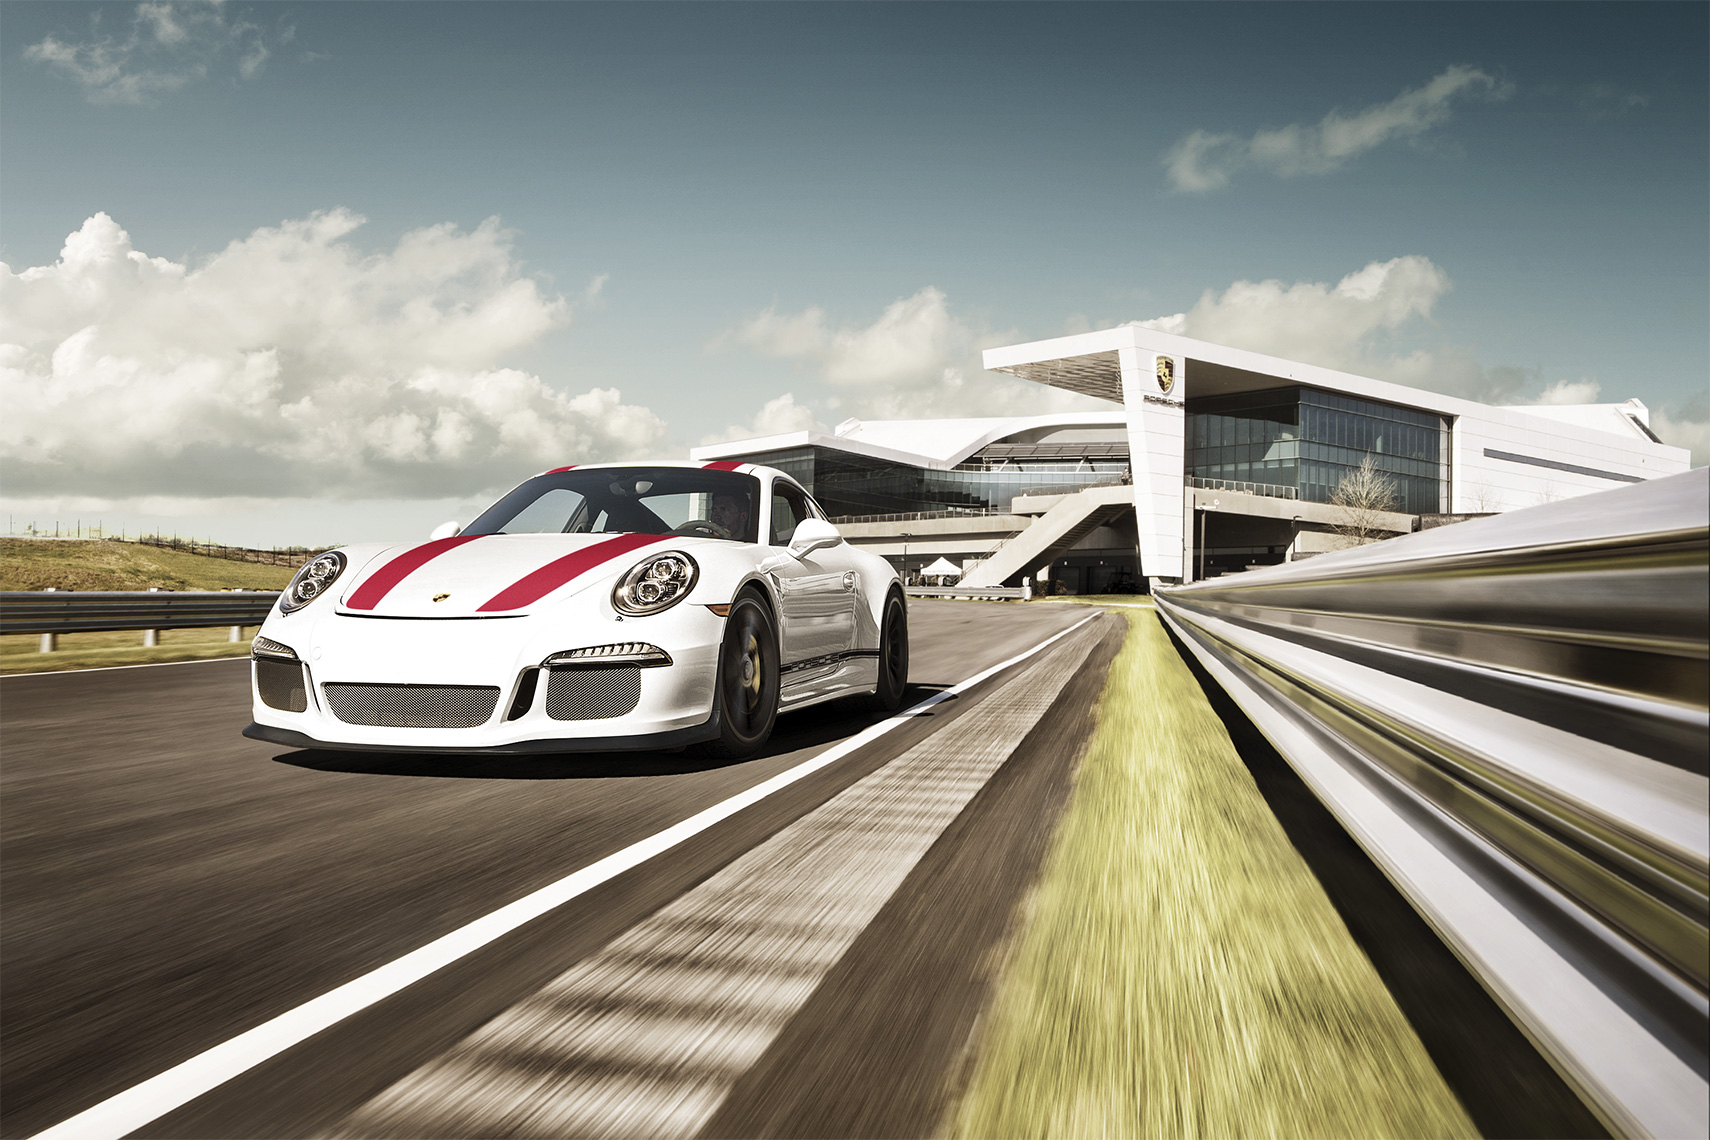 Porsche-Background_002-cmyk-copy